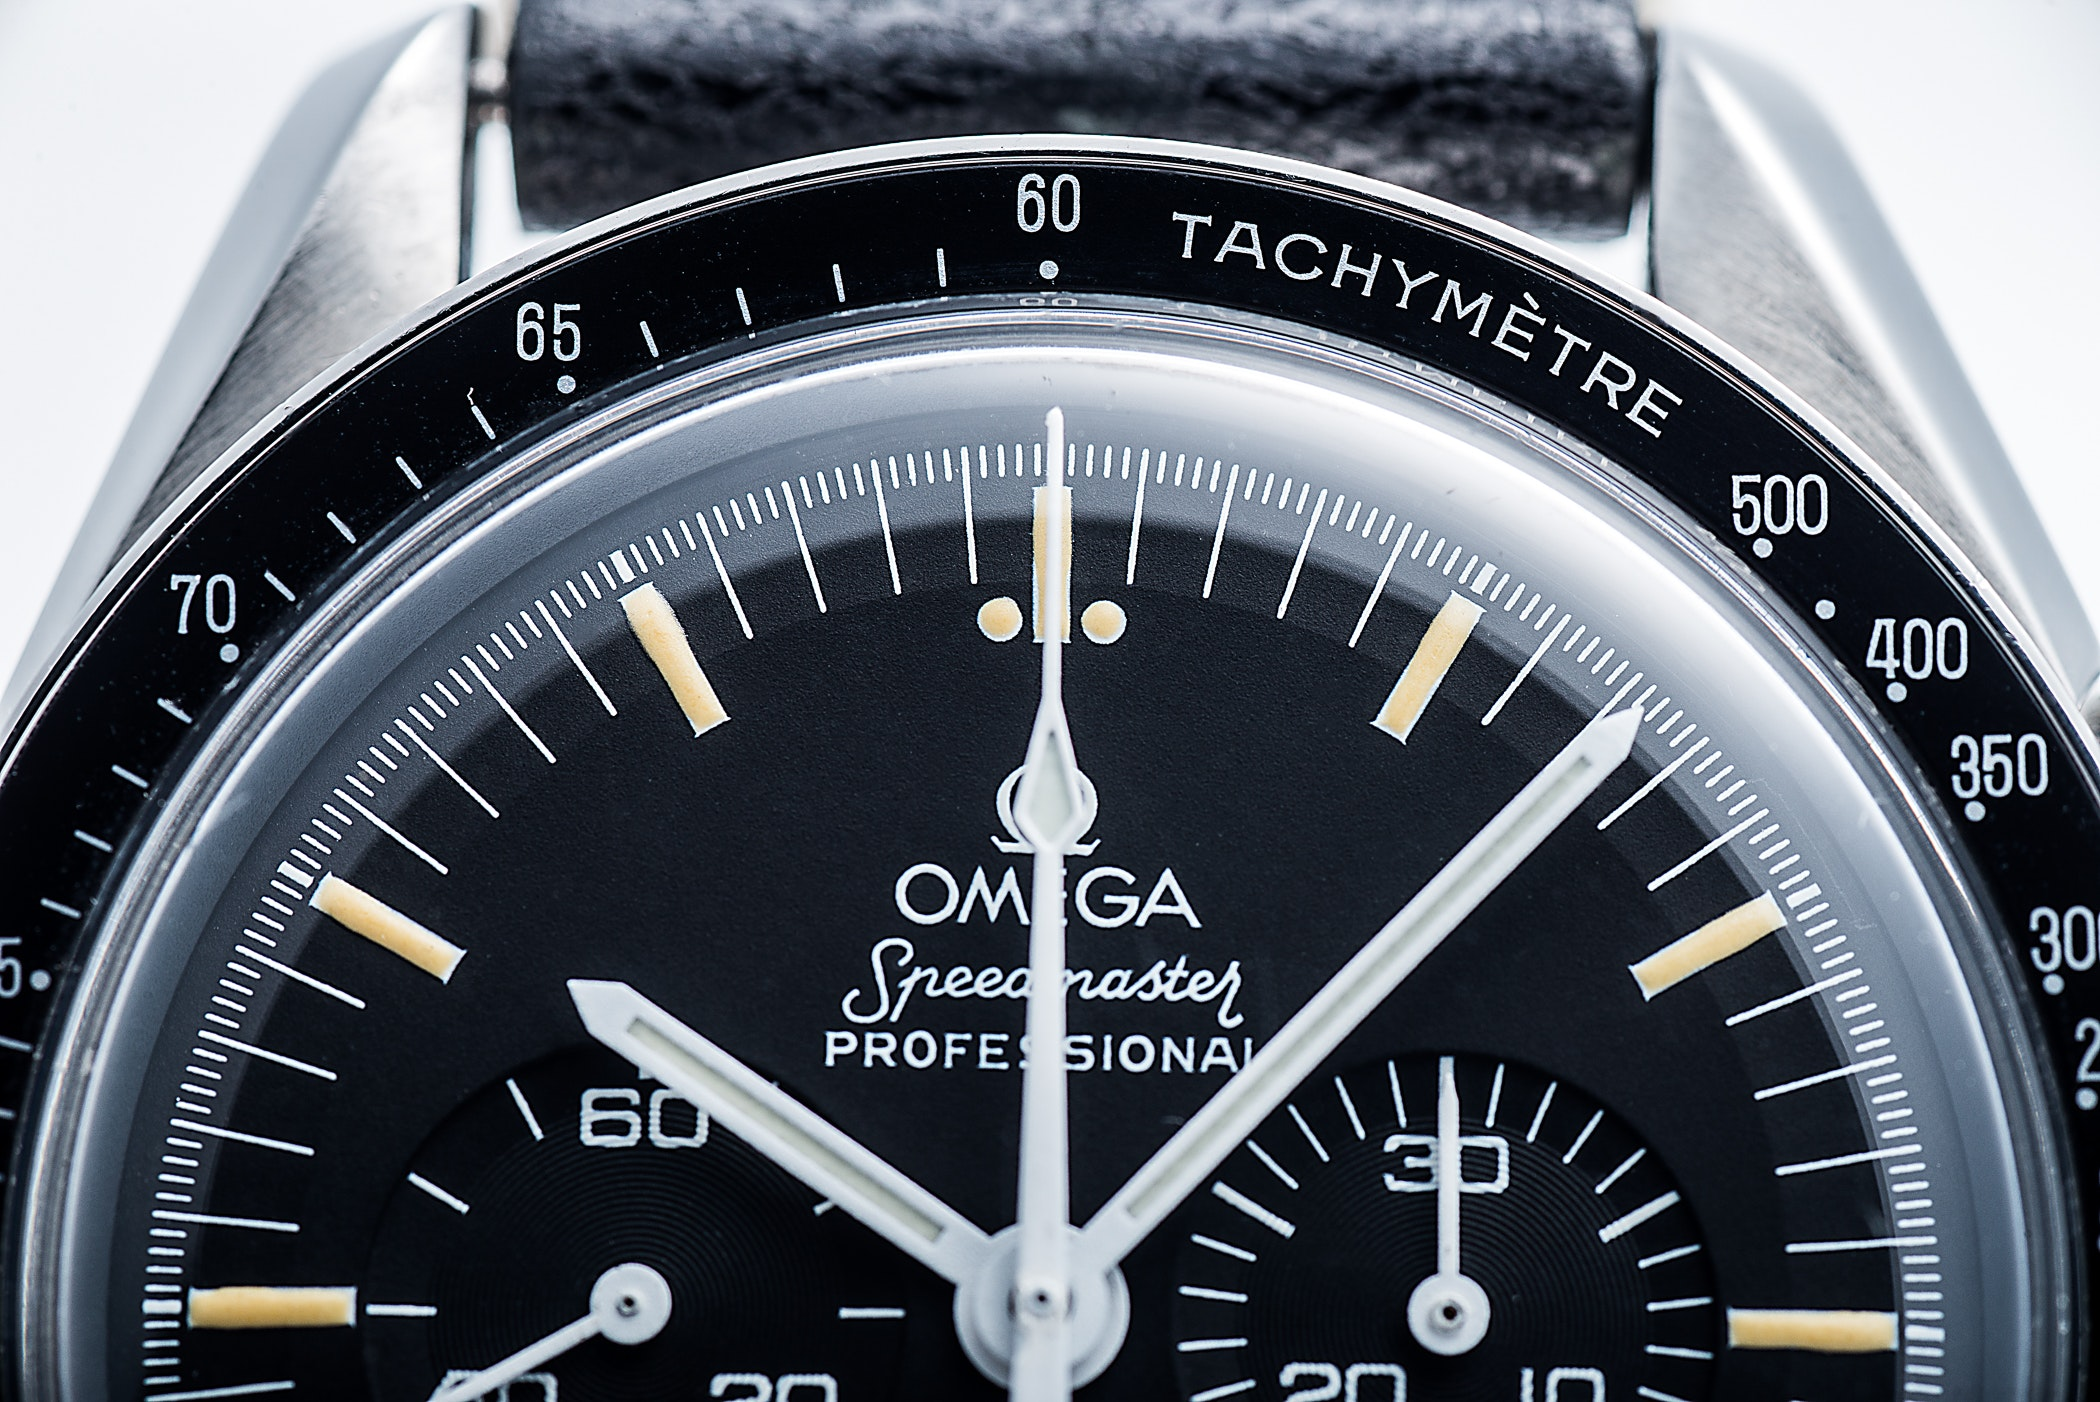 Is it real? A buyer's guide to spotting a fake Omega